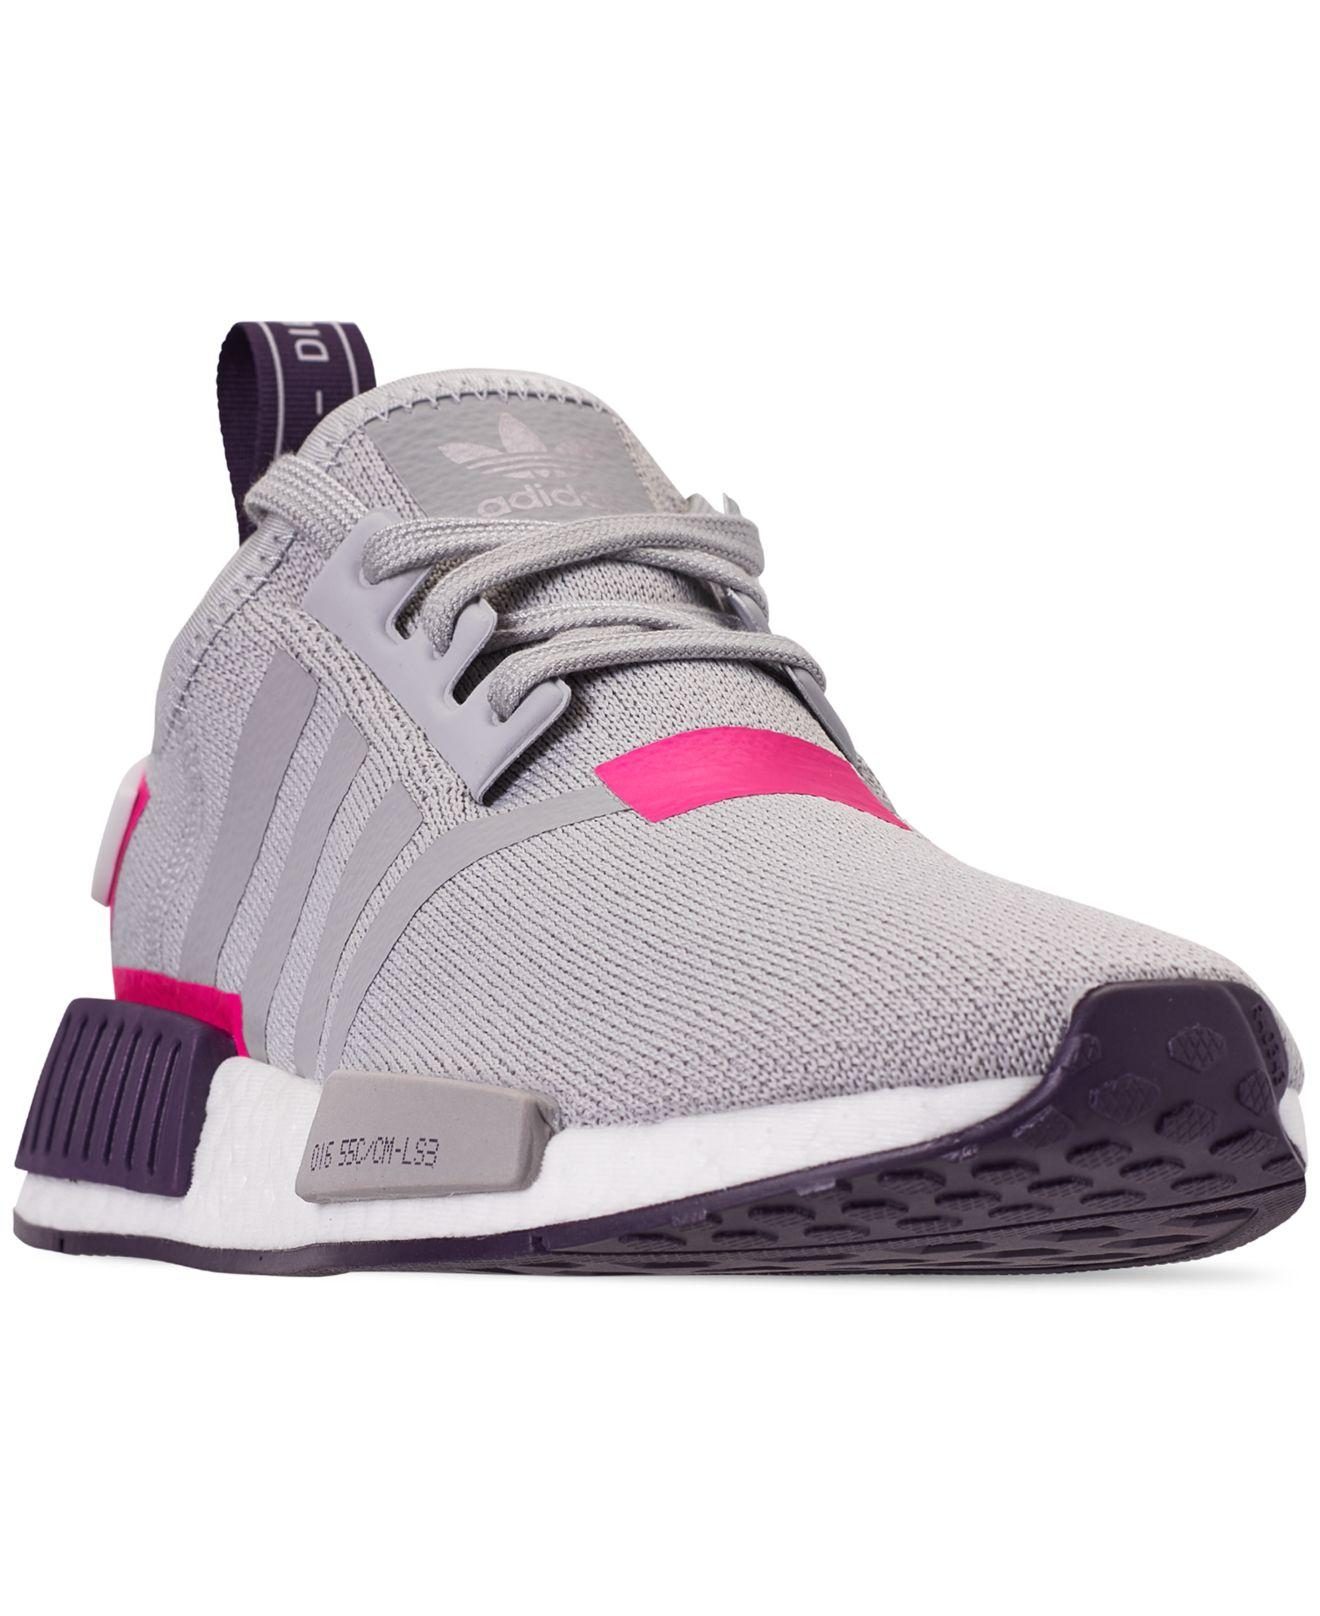 900da33097bd2 Lyst - adidas Nmd R1 Casual Sneakers From Finish Line in Gray